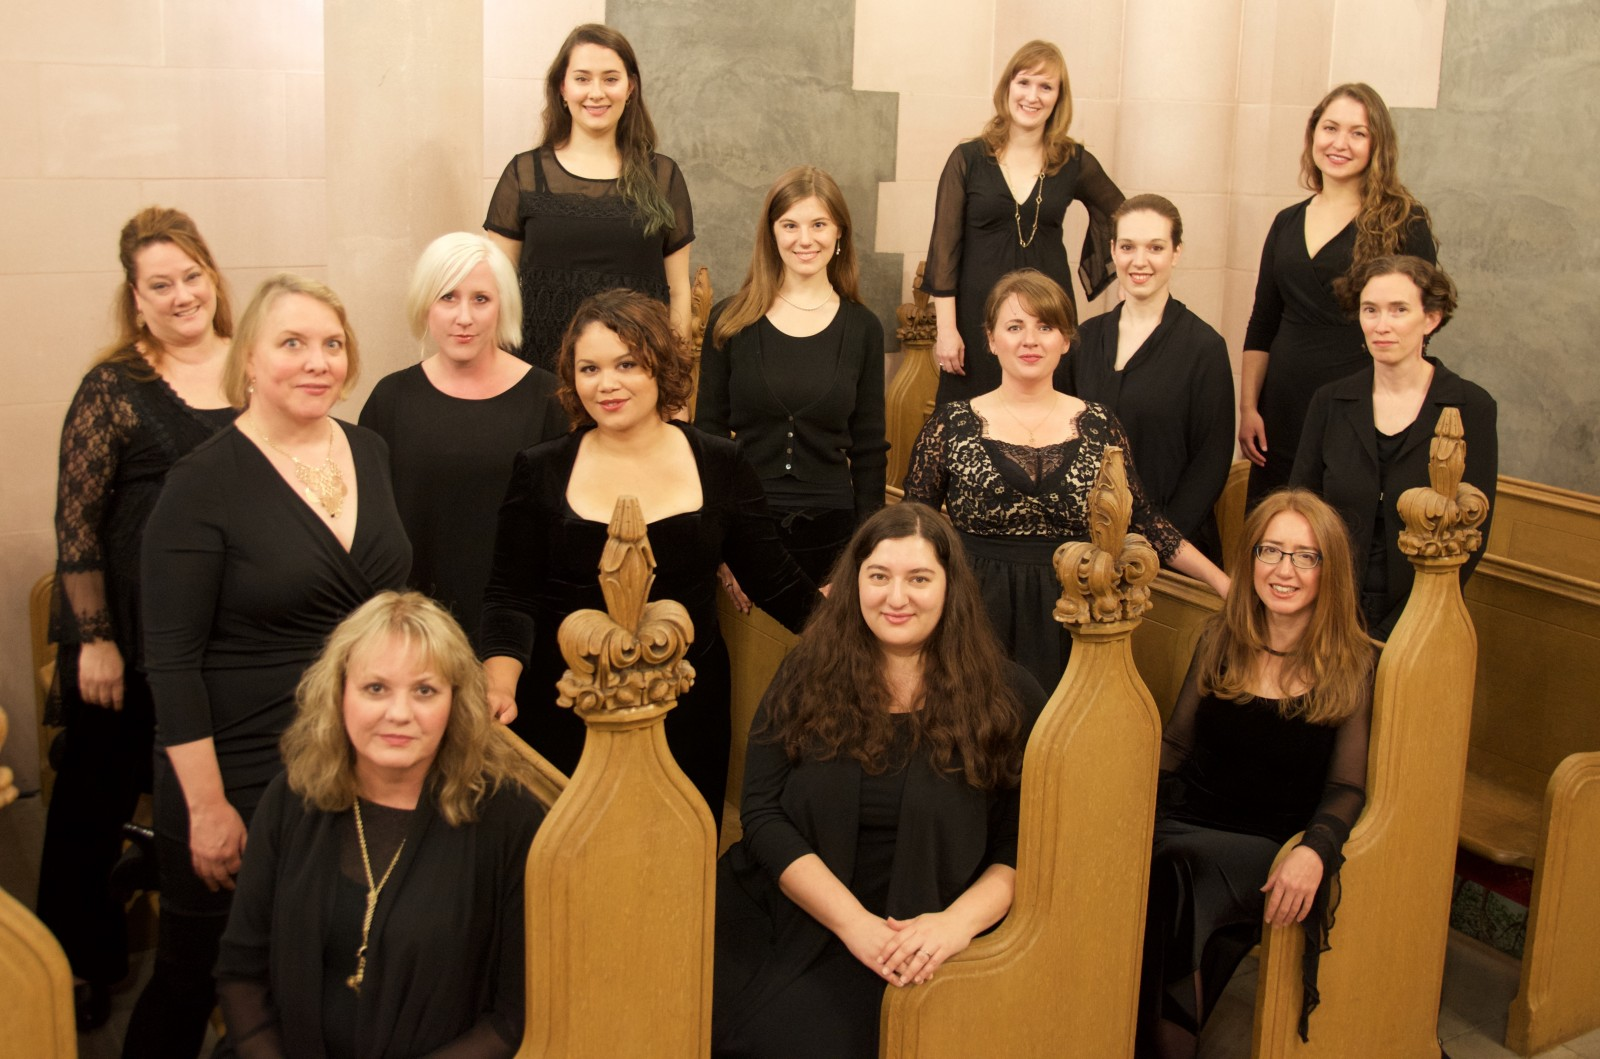 Ave Renaissance Women's Choir